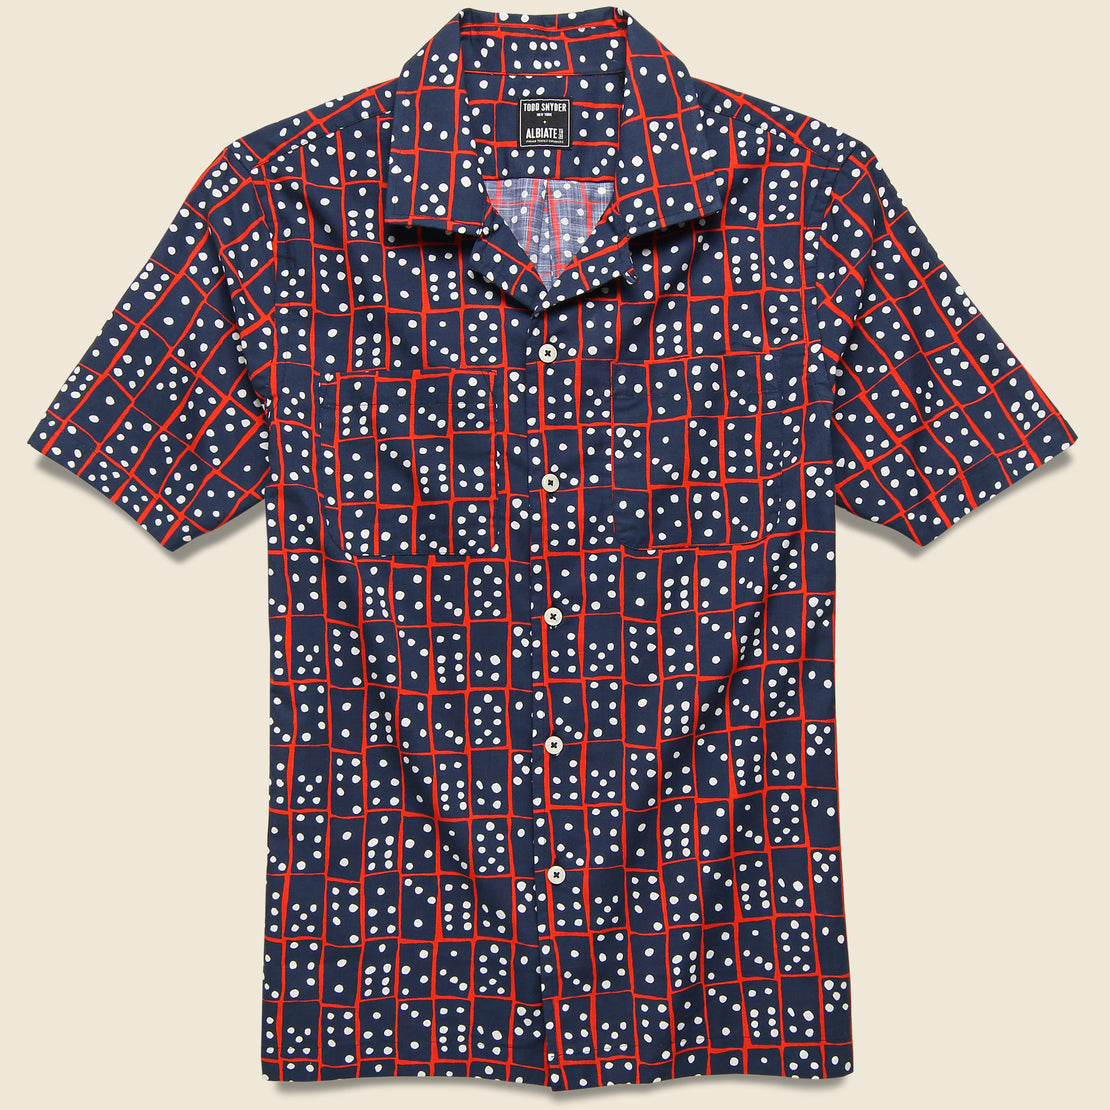 Todd Snyder Domino Camp Shirt - Navy/Red